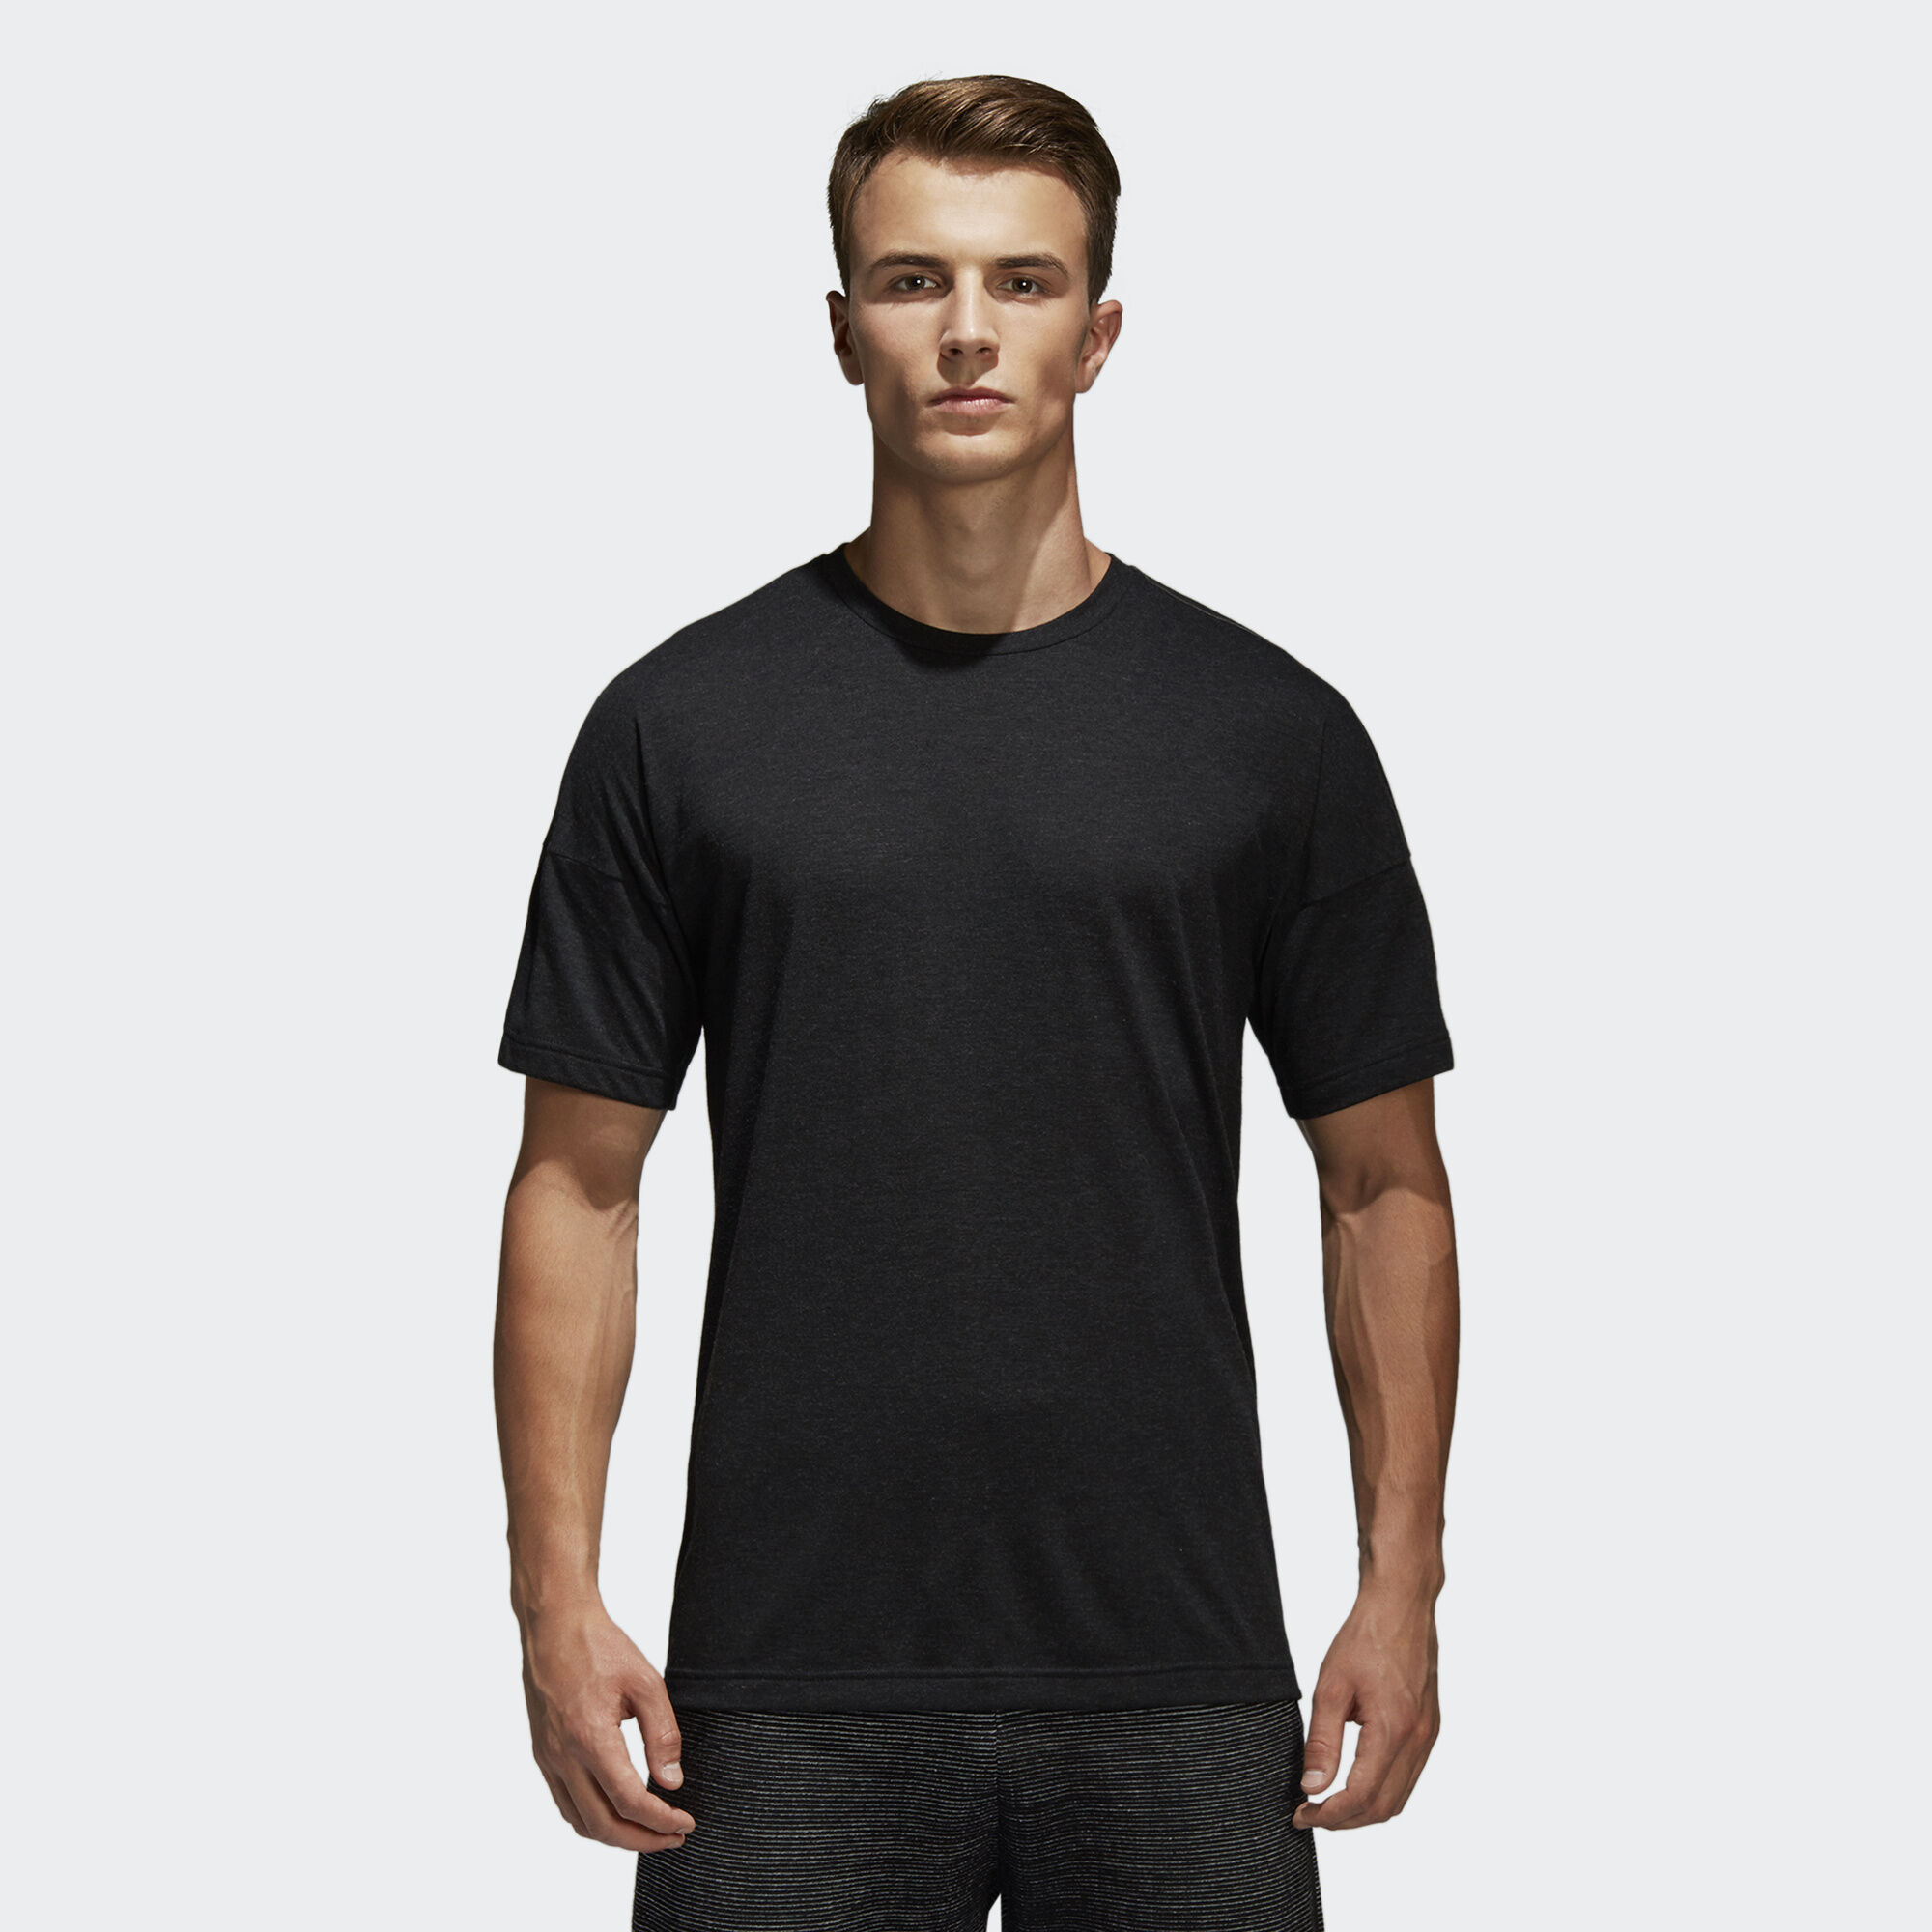 Adidas z n e tee black adidas regional for Model black t shirt